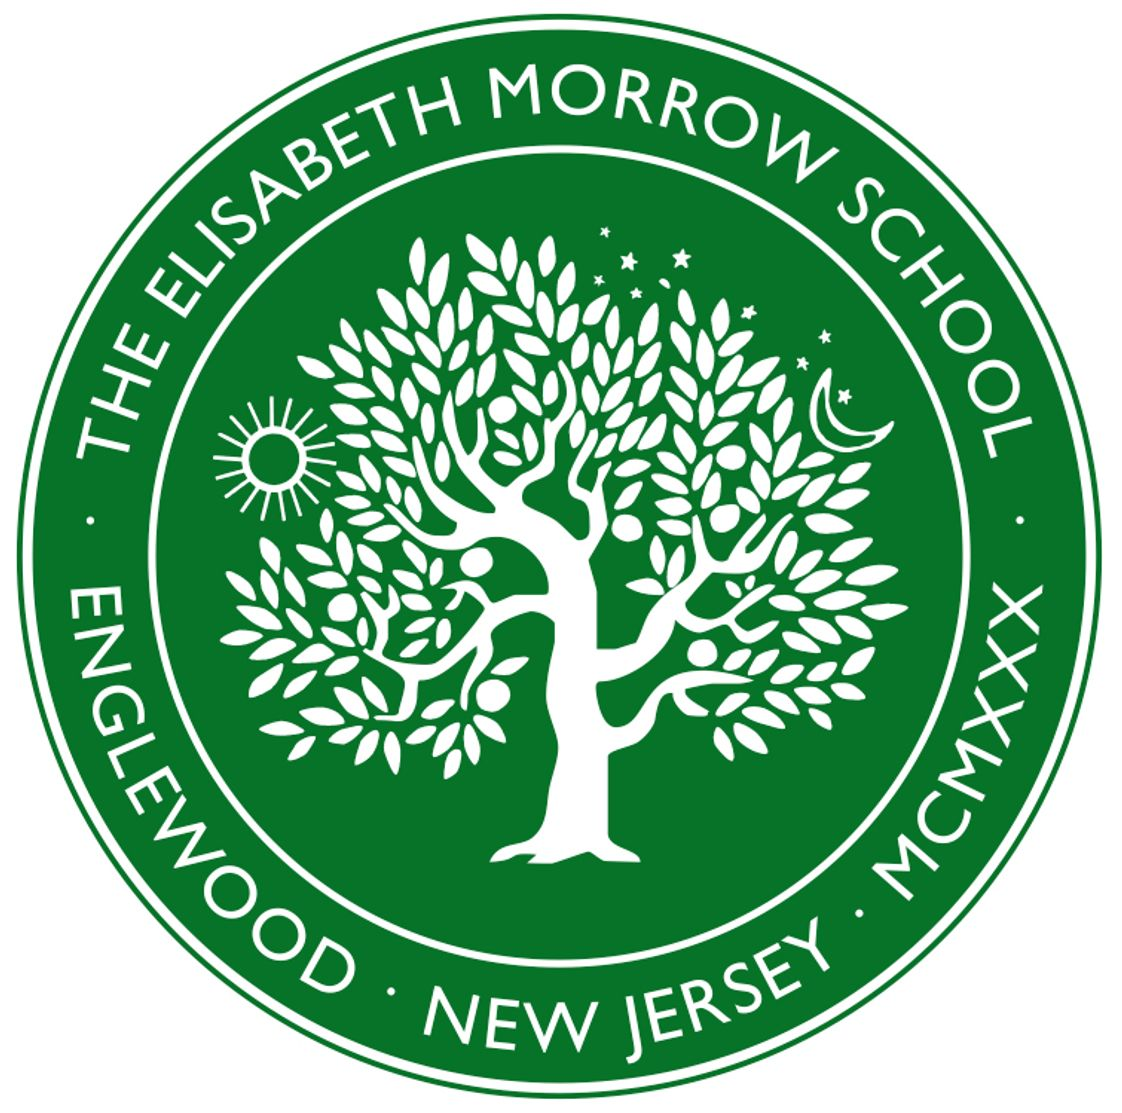 The Elisabeth Morrow School Photo - Providing children with a foundation for successful, life-long learning is a hallmark of The Elisabeth Morrow School. Our graduates are ready to succeed within a 21st Century curriculum and beyond.